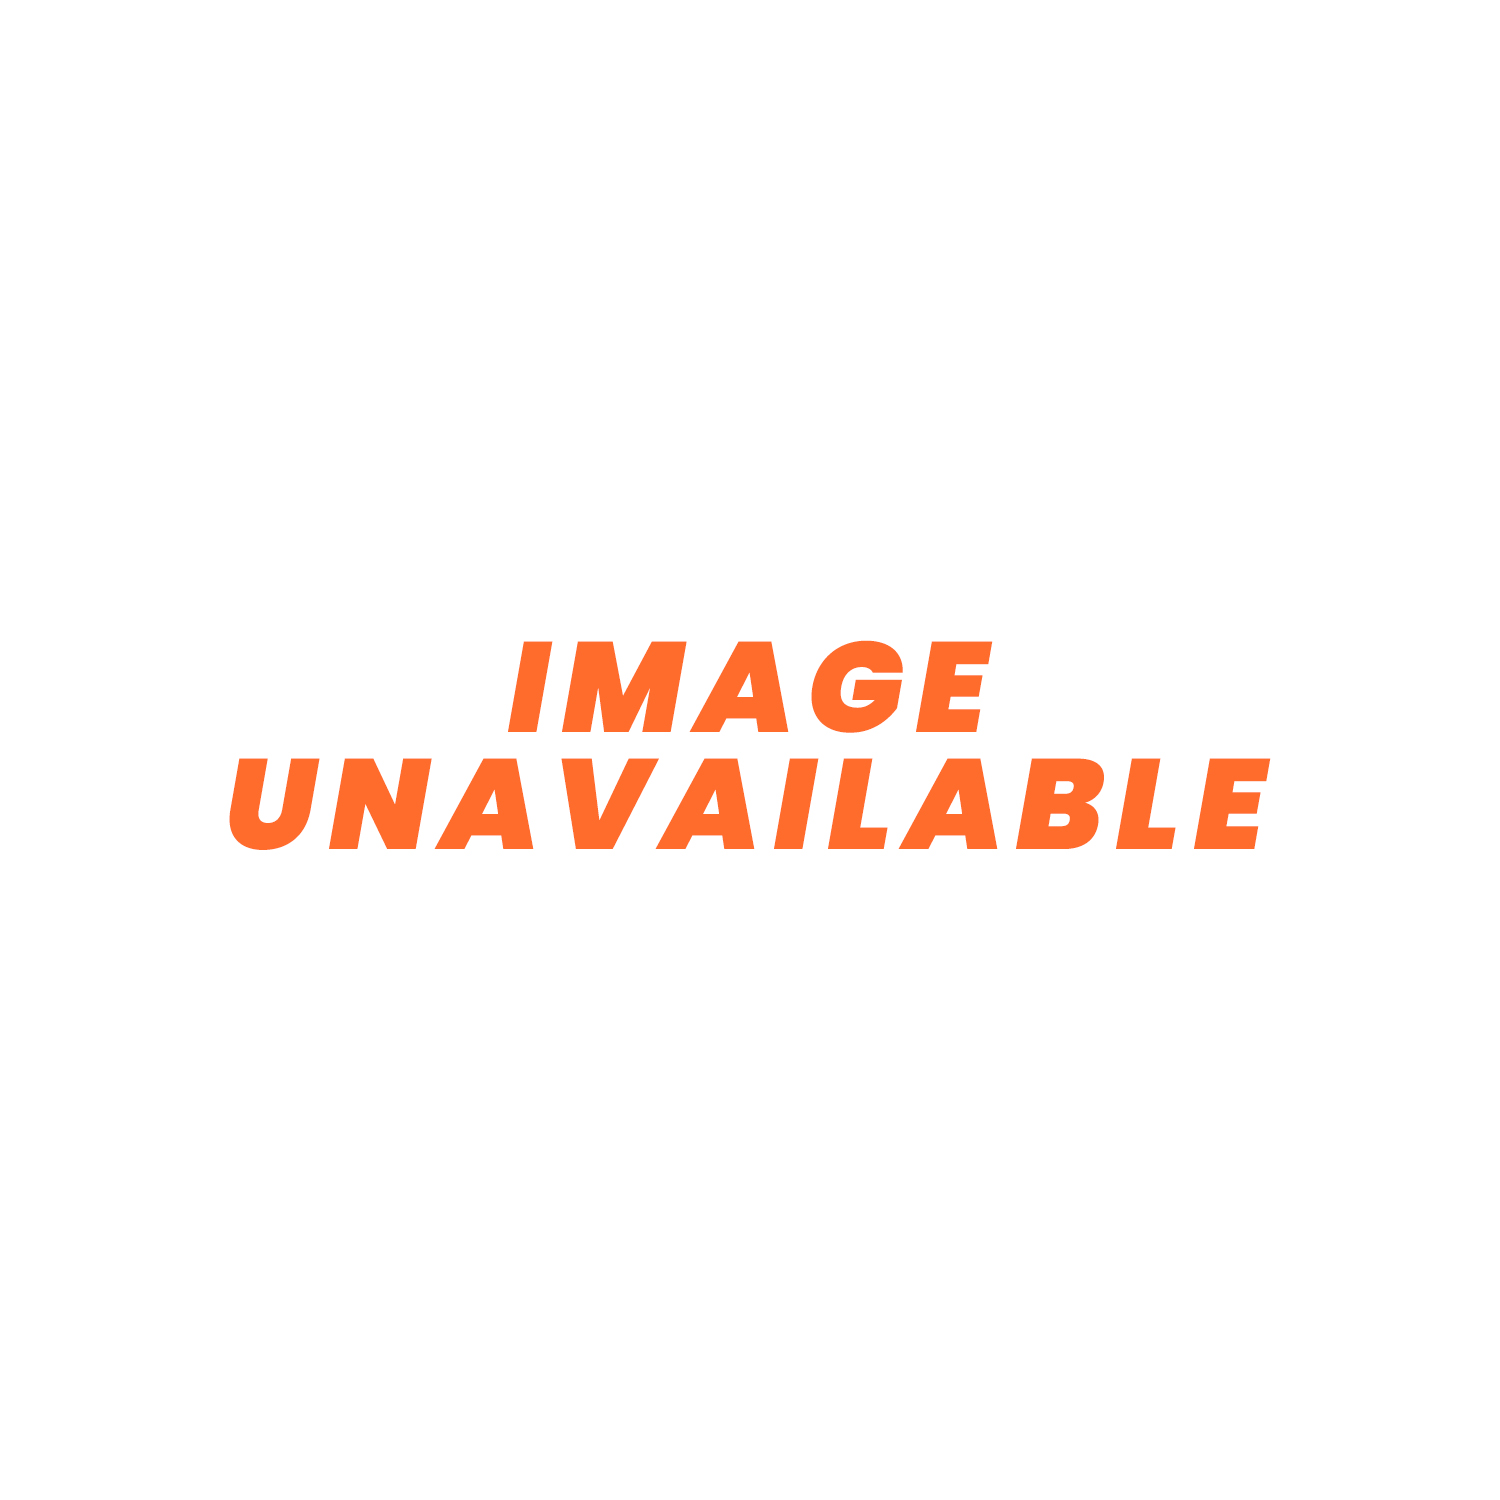 Sanden SD7H15 8086 8240 155cc Compressor Poly-V 8 Rib Vertical 119mm 24v